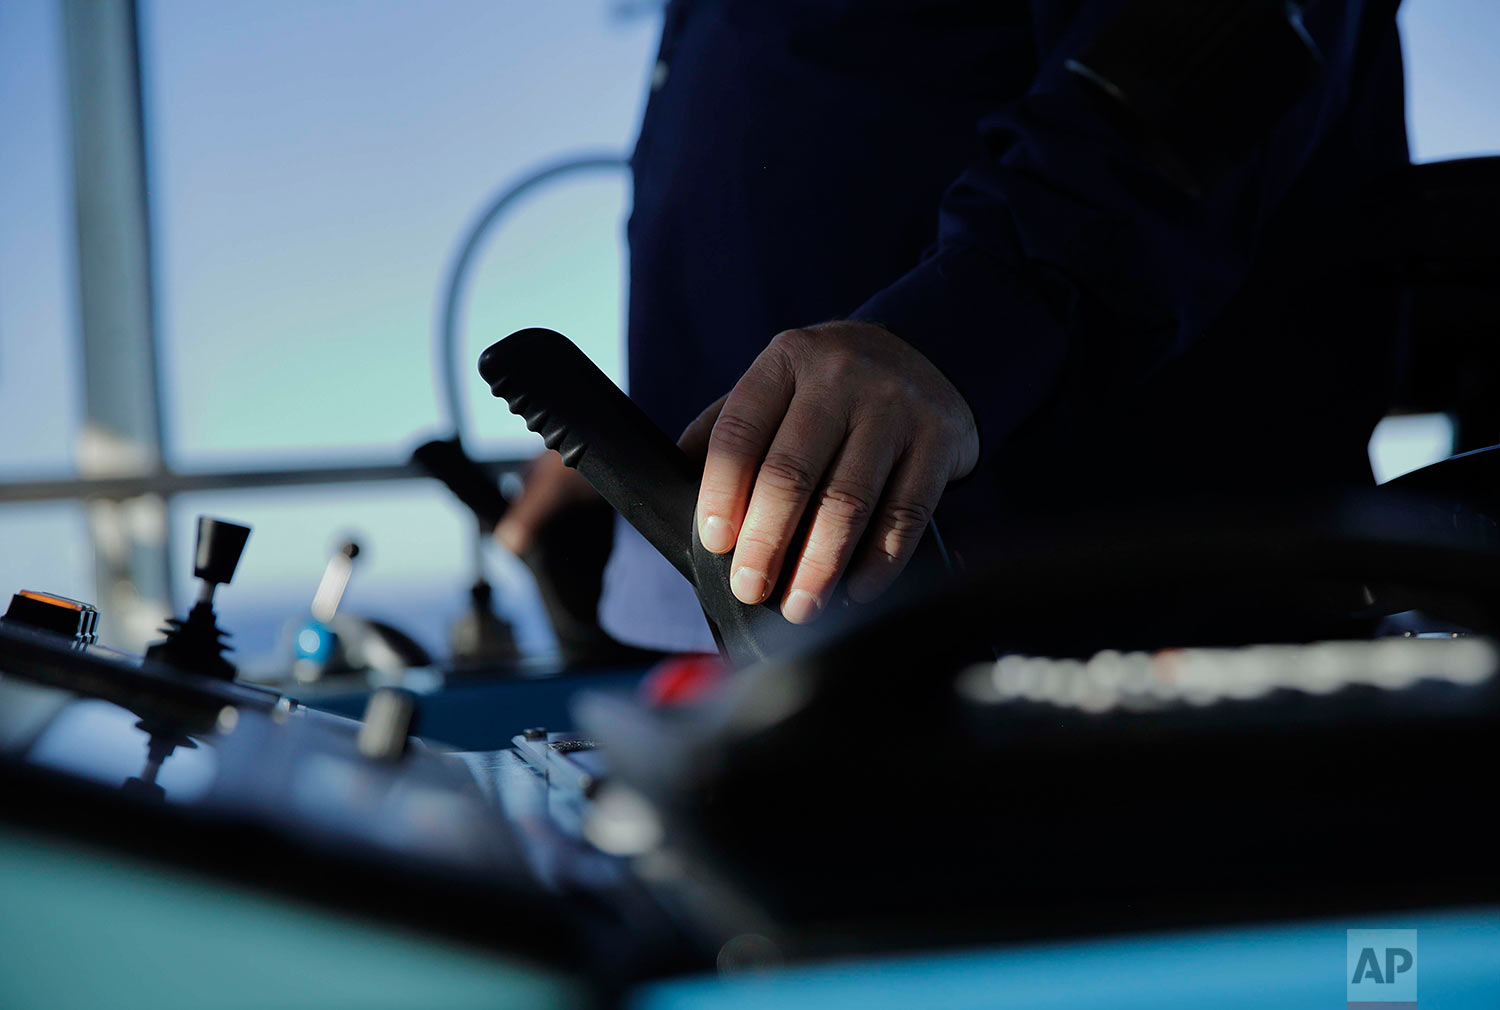 Master Mariner Jyri Viljanen, captain of the Finnish icebreaker MSV Nordica. pushes the thruster while demonstrating the ship's maneuverability while sailing the Dolphin and Union Strait off the coast of Canada through the Arctic's Northwest Passage, Wednesday, July 19, 2017. Icebreakers with azimuth thrusters, such as the Nordica, are extremely maneuverable and can change direction very quickly, allowing the ship to avoid many unnecessary encounters with ice that would otherwise slow it down. (AP Photo/David Goldman)